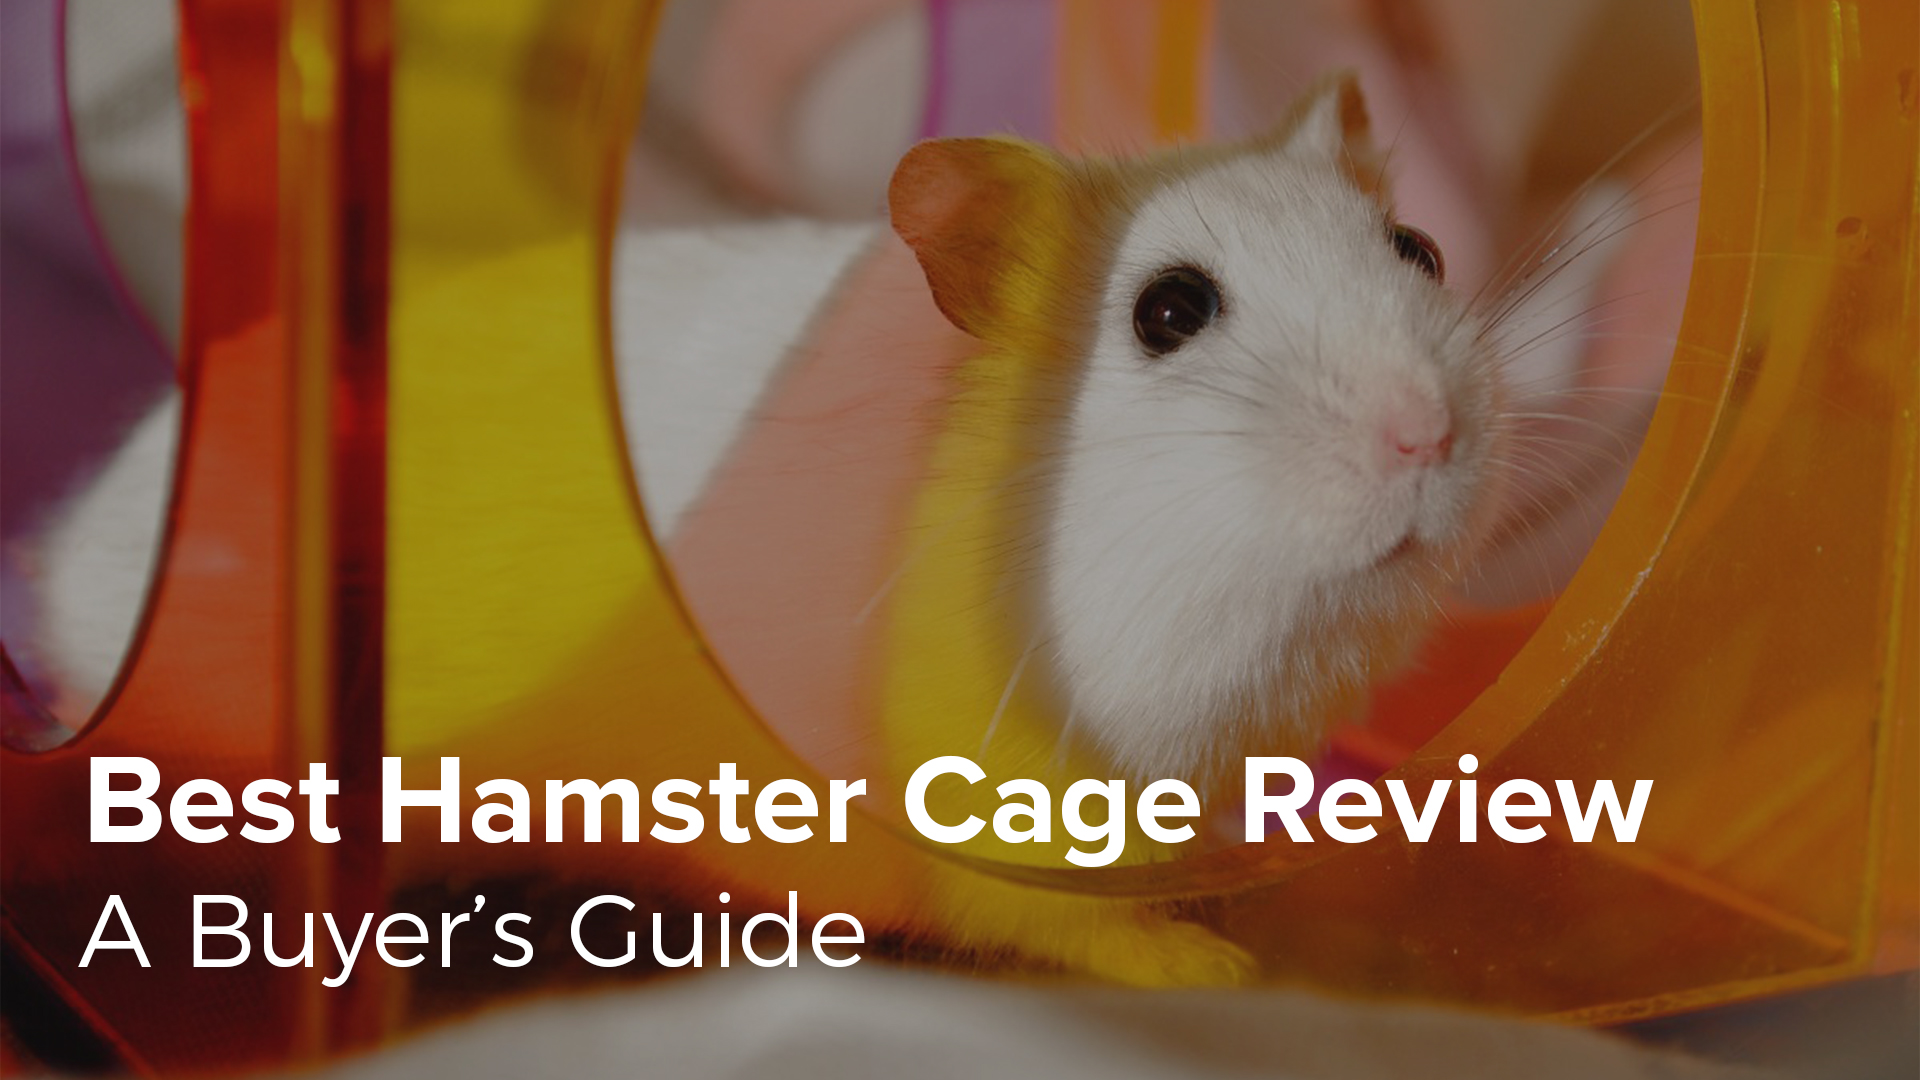 Best Hamster Cage Review